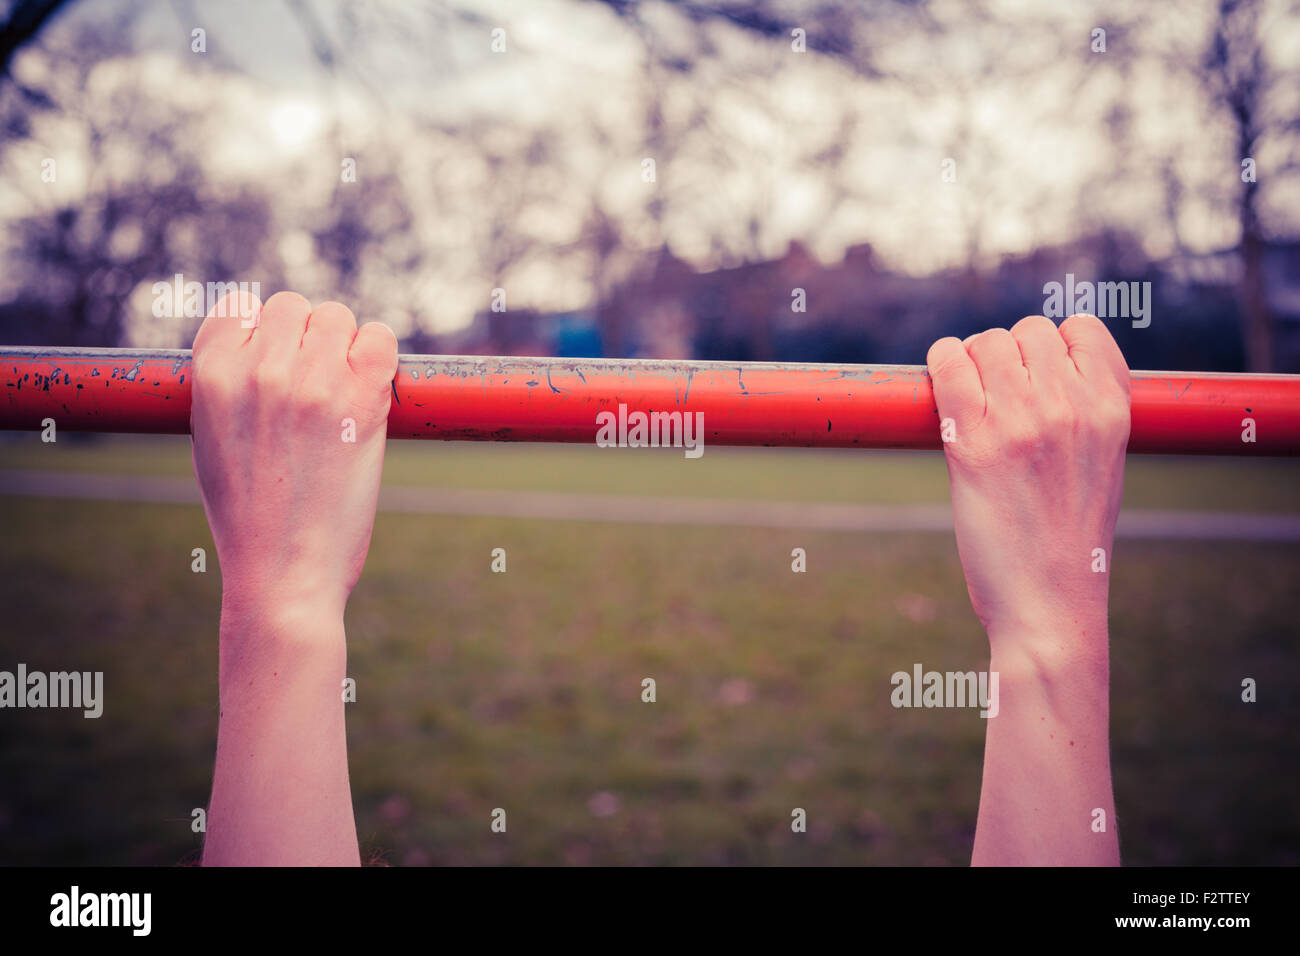 Closeup on a young woman's hands as she is hanging from a monkey bar in the park - Stock Image